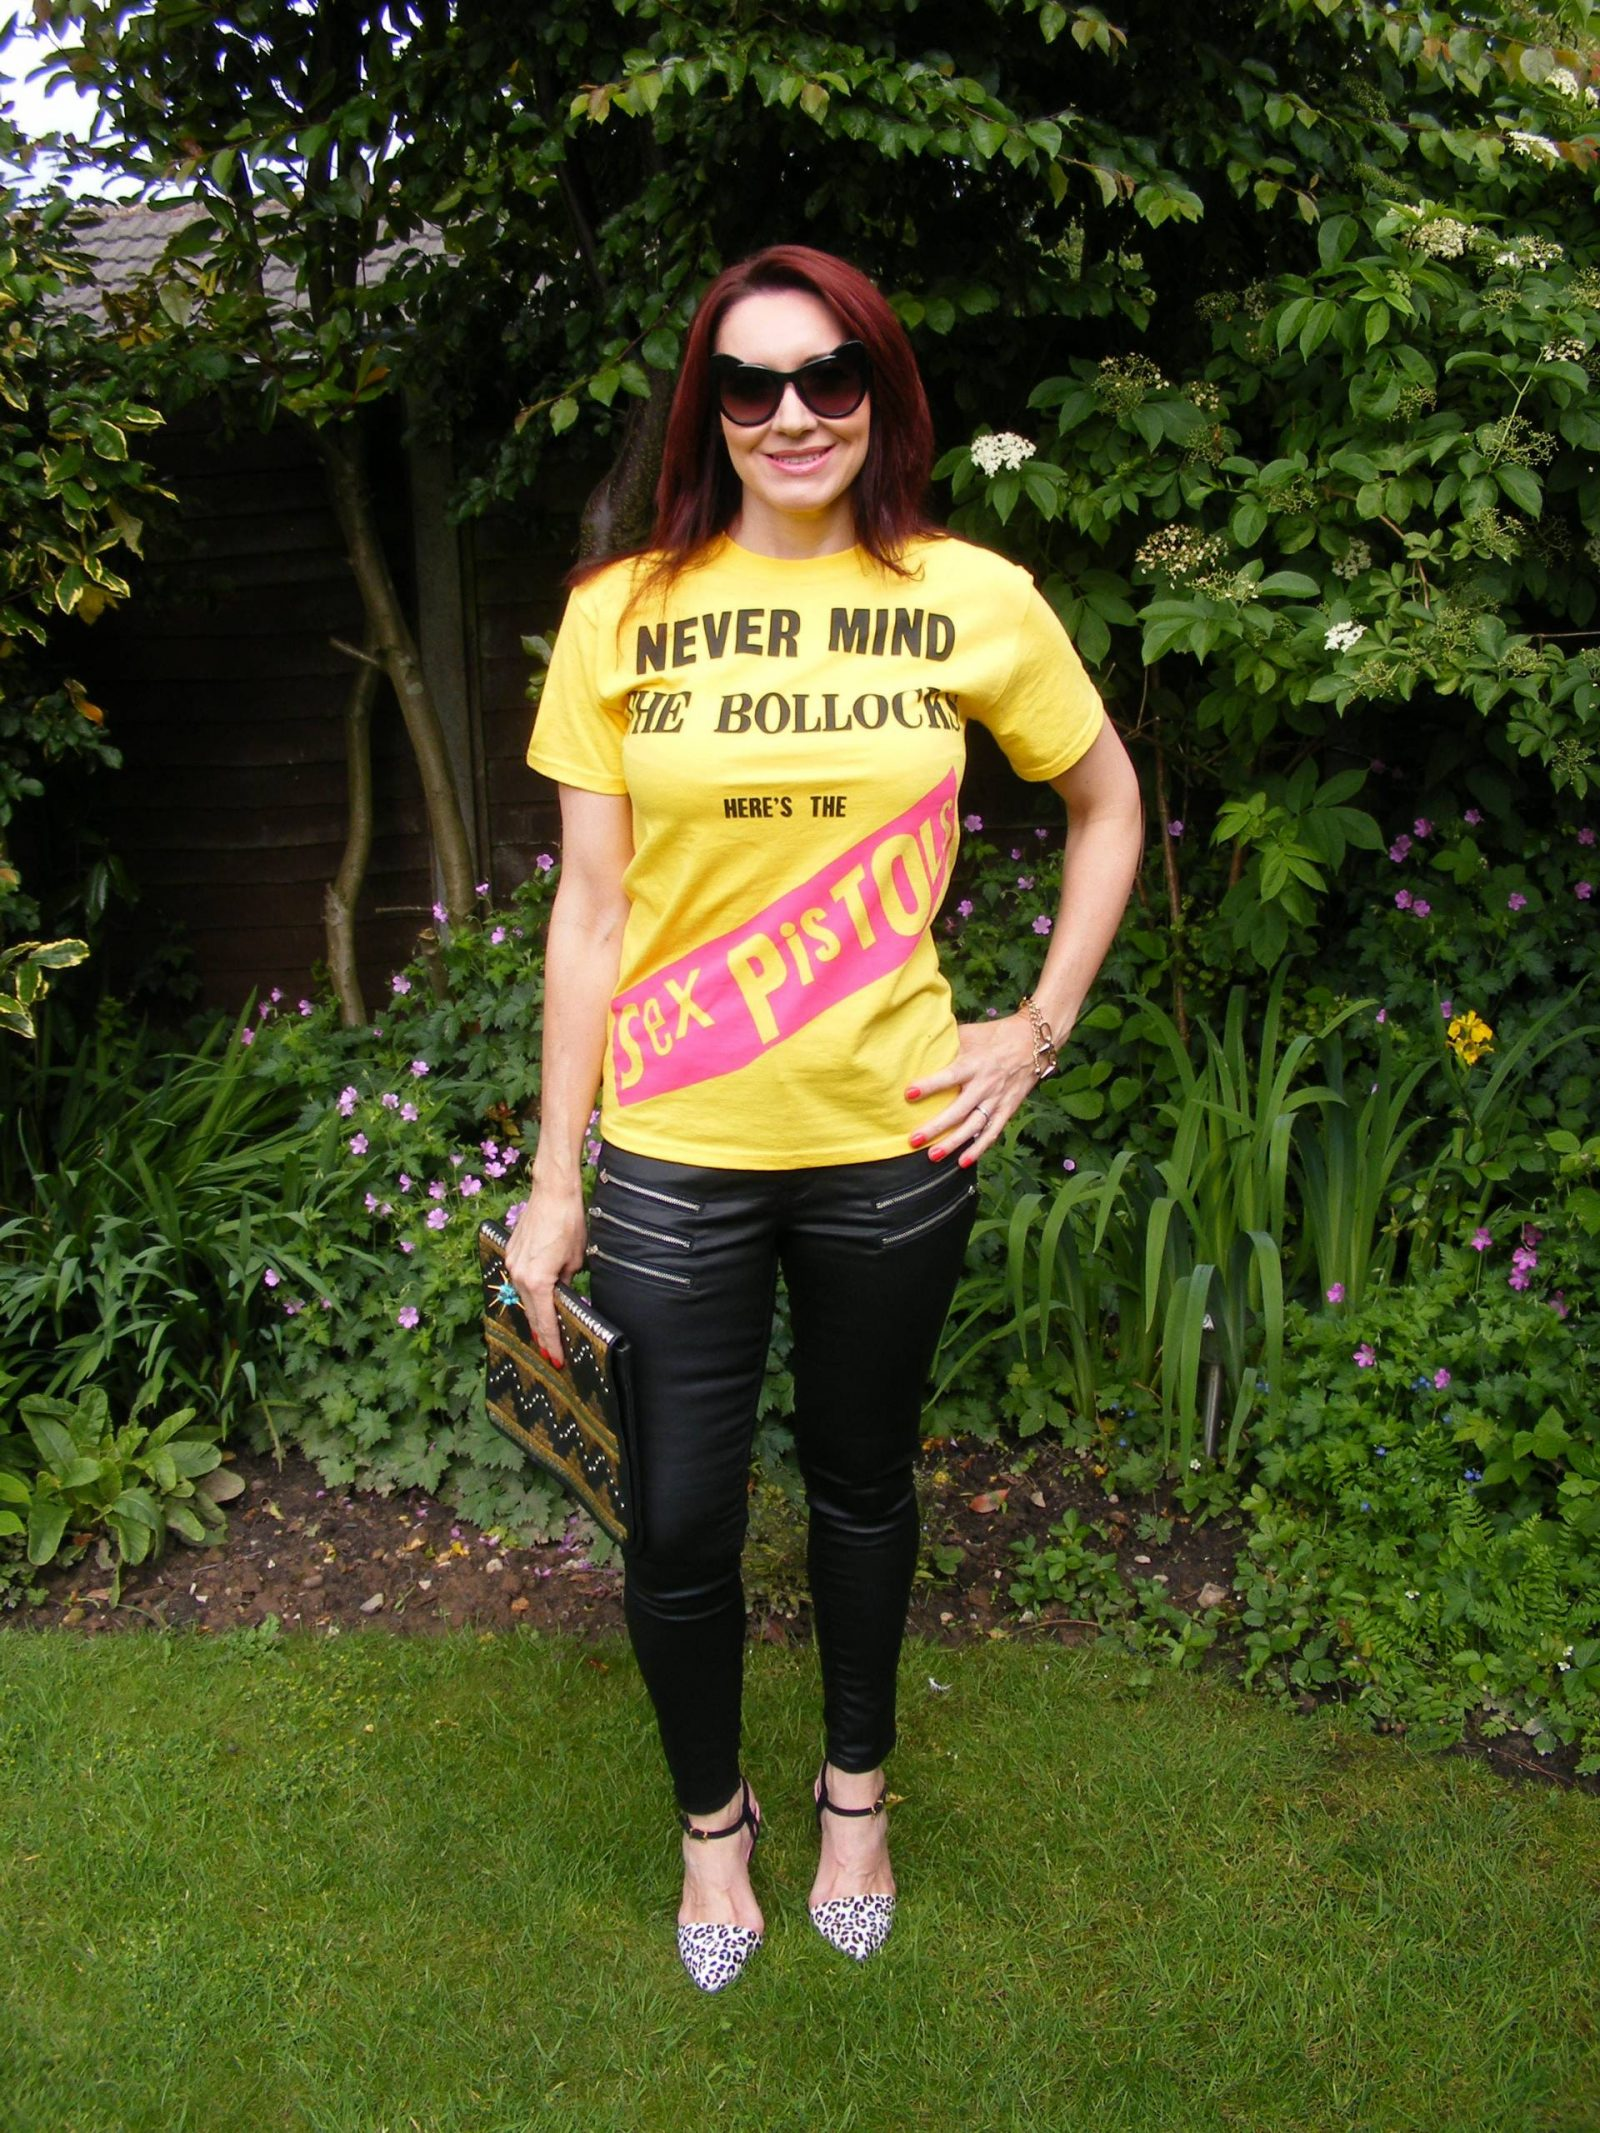 """Uptown Punk - Never Mind the """"Rules"""", Sex Pistols tee, Very coated black jeans"""